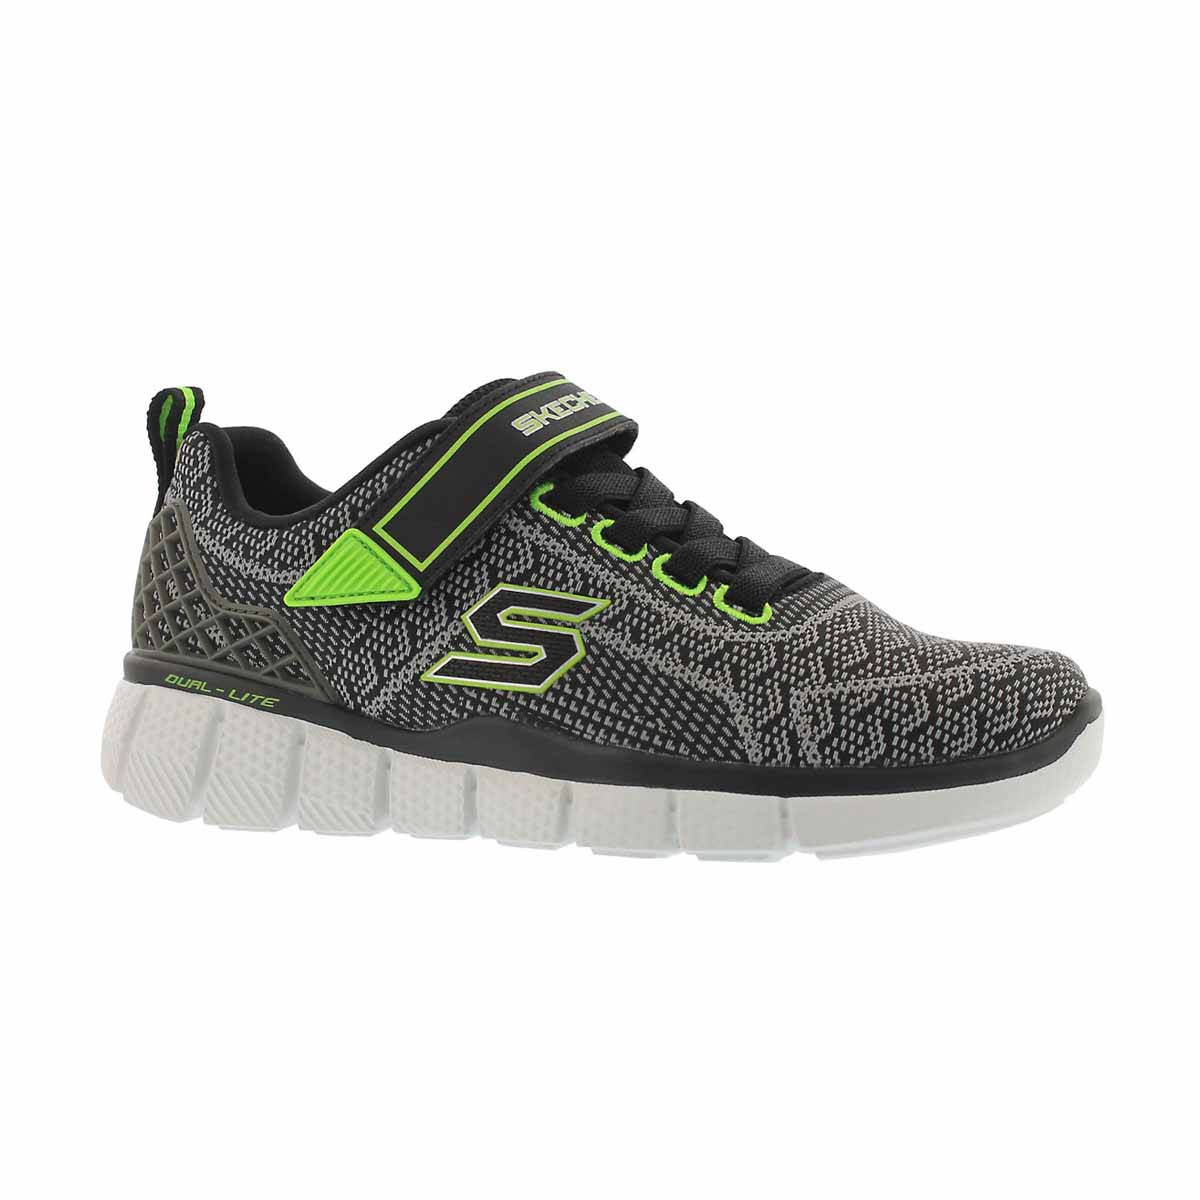 Boys' EQUALIZER 2.0 black/grey/green sneakers